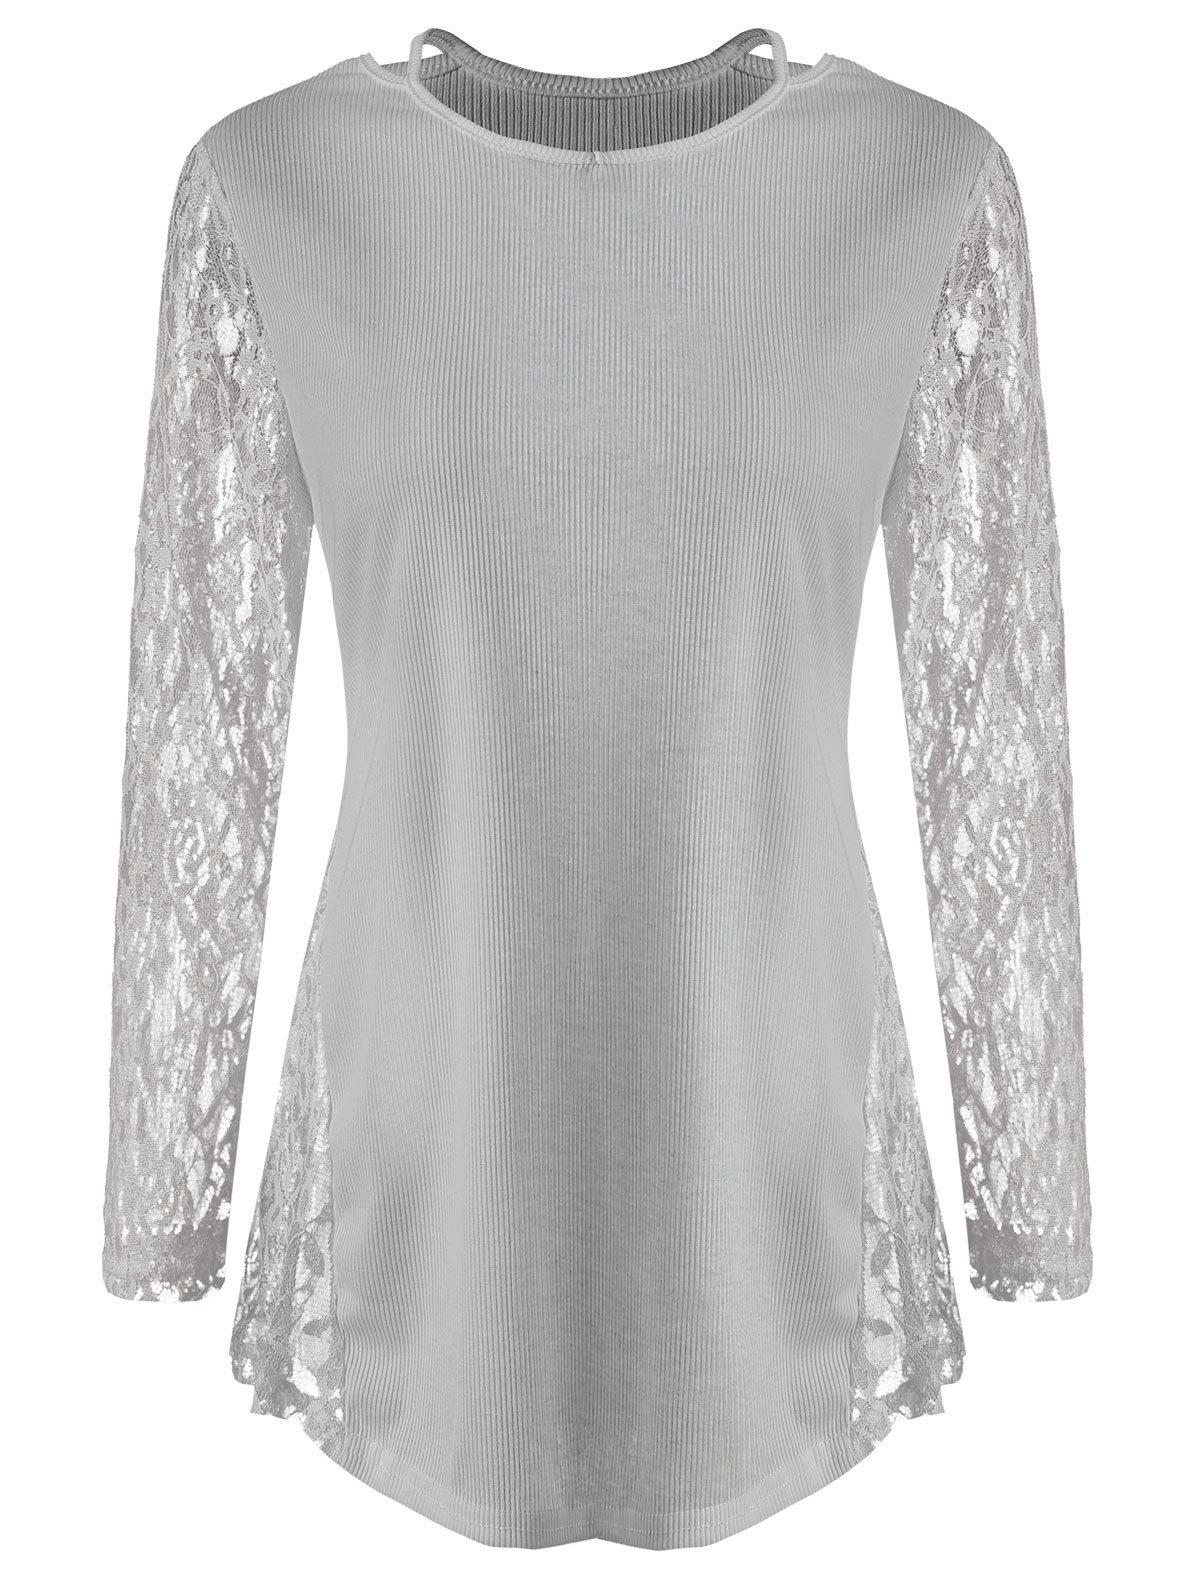 Chic Lace Panel Cut Out T Shirt